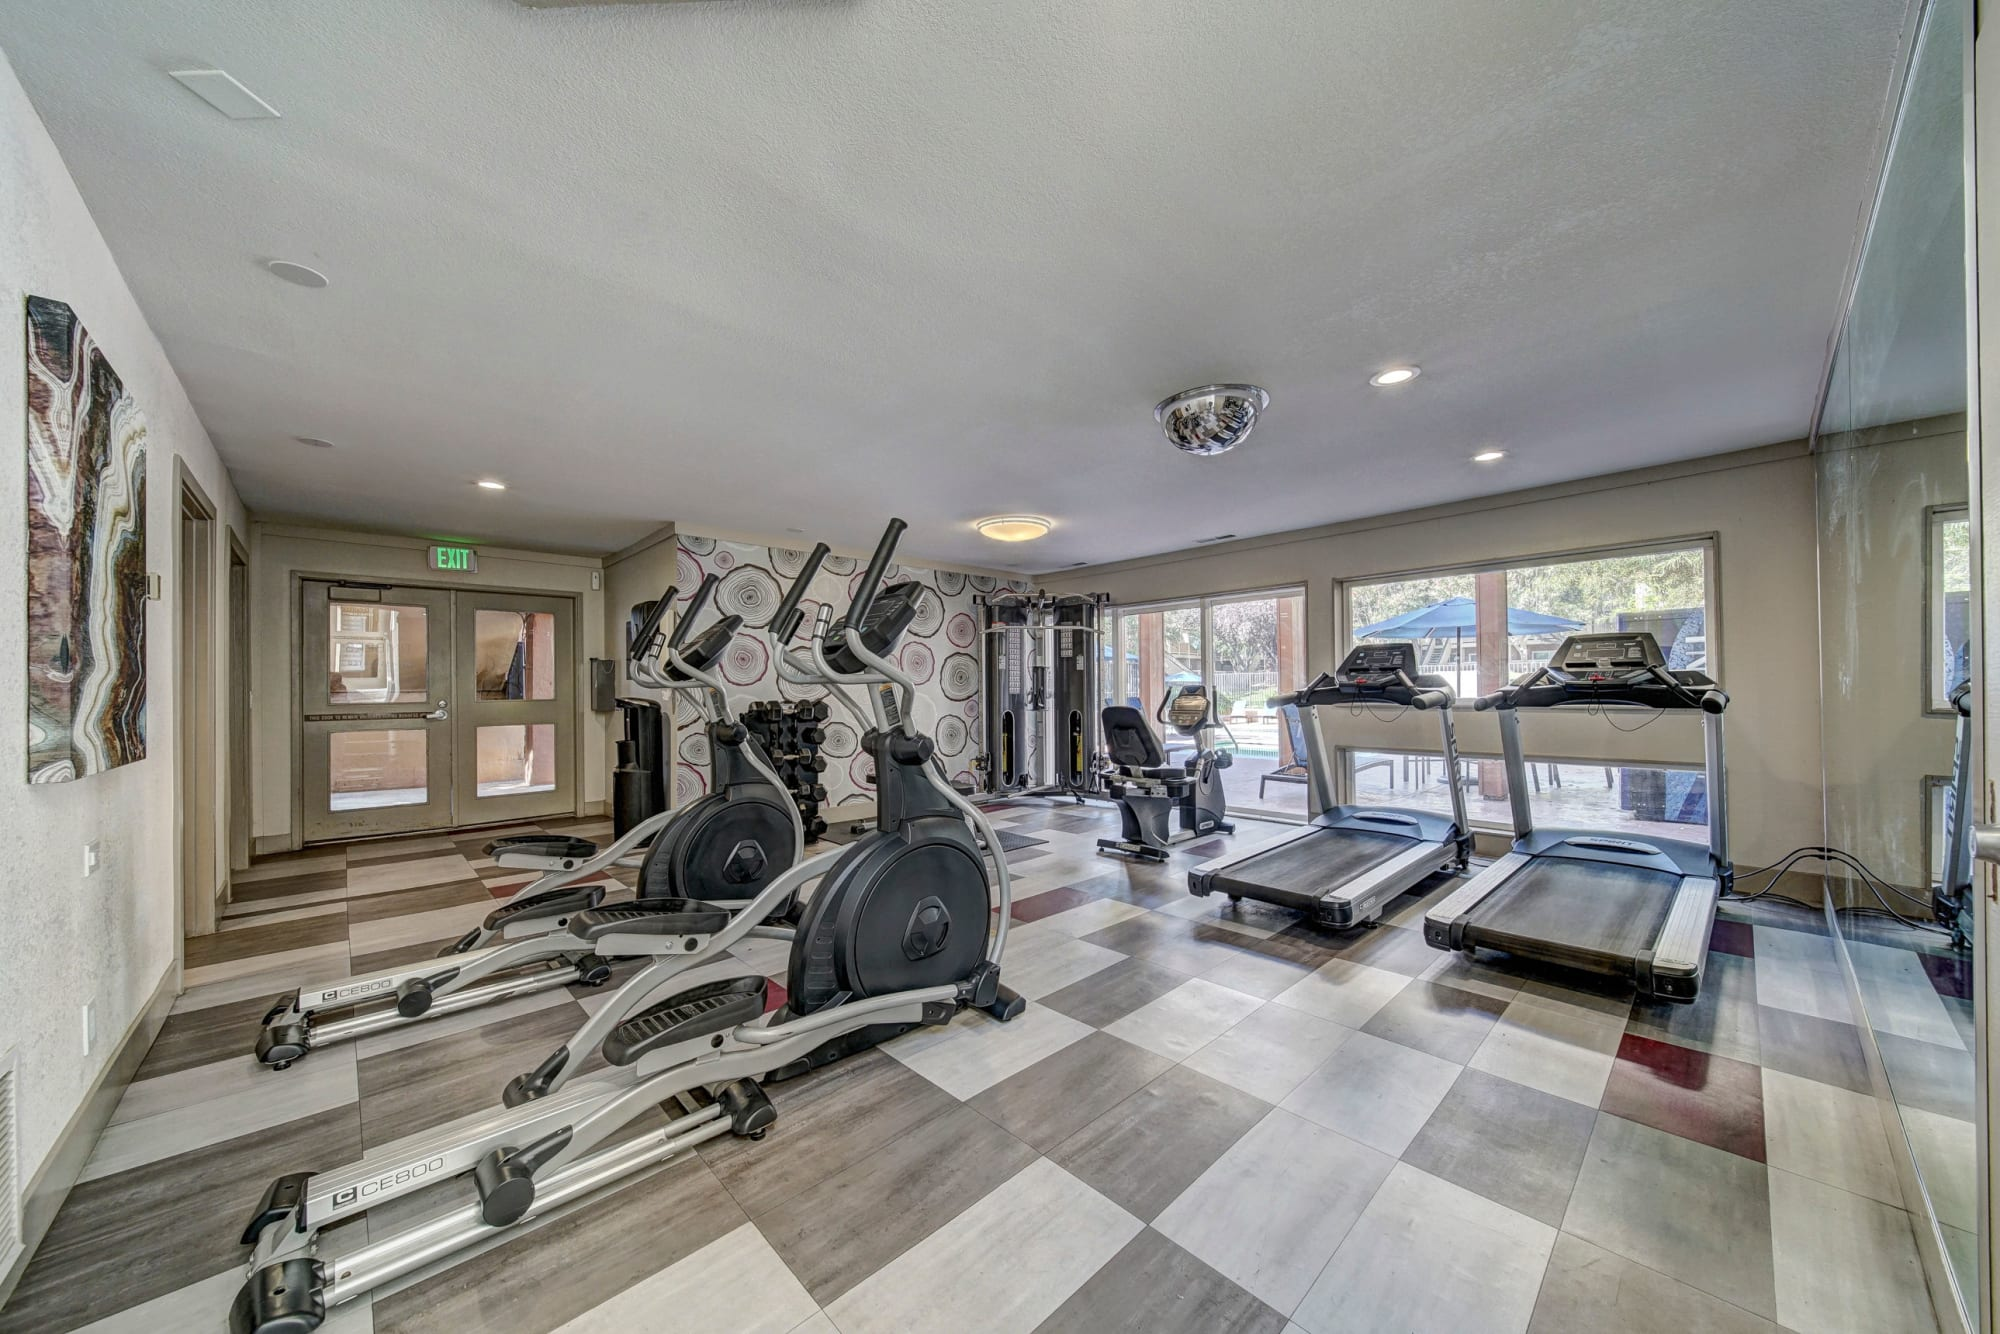 Fitness center with cardio machines and large windows looking out to the pool area at The Timbers Apartments in Hayward, California